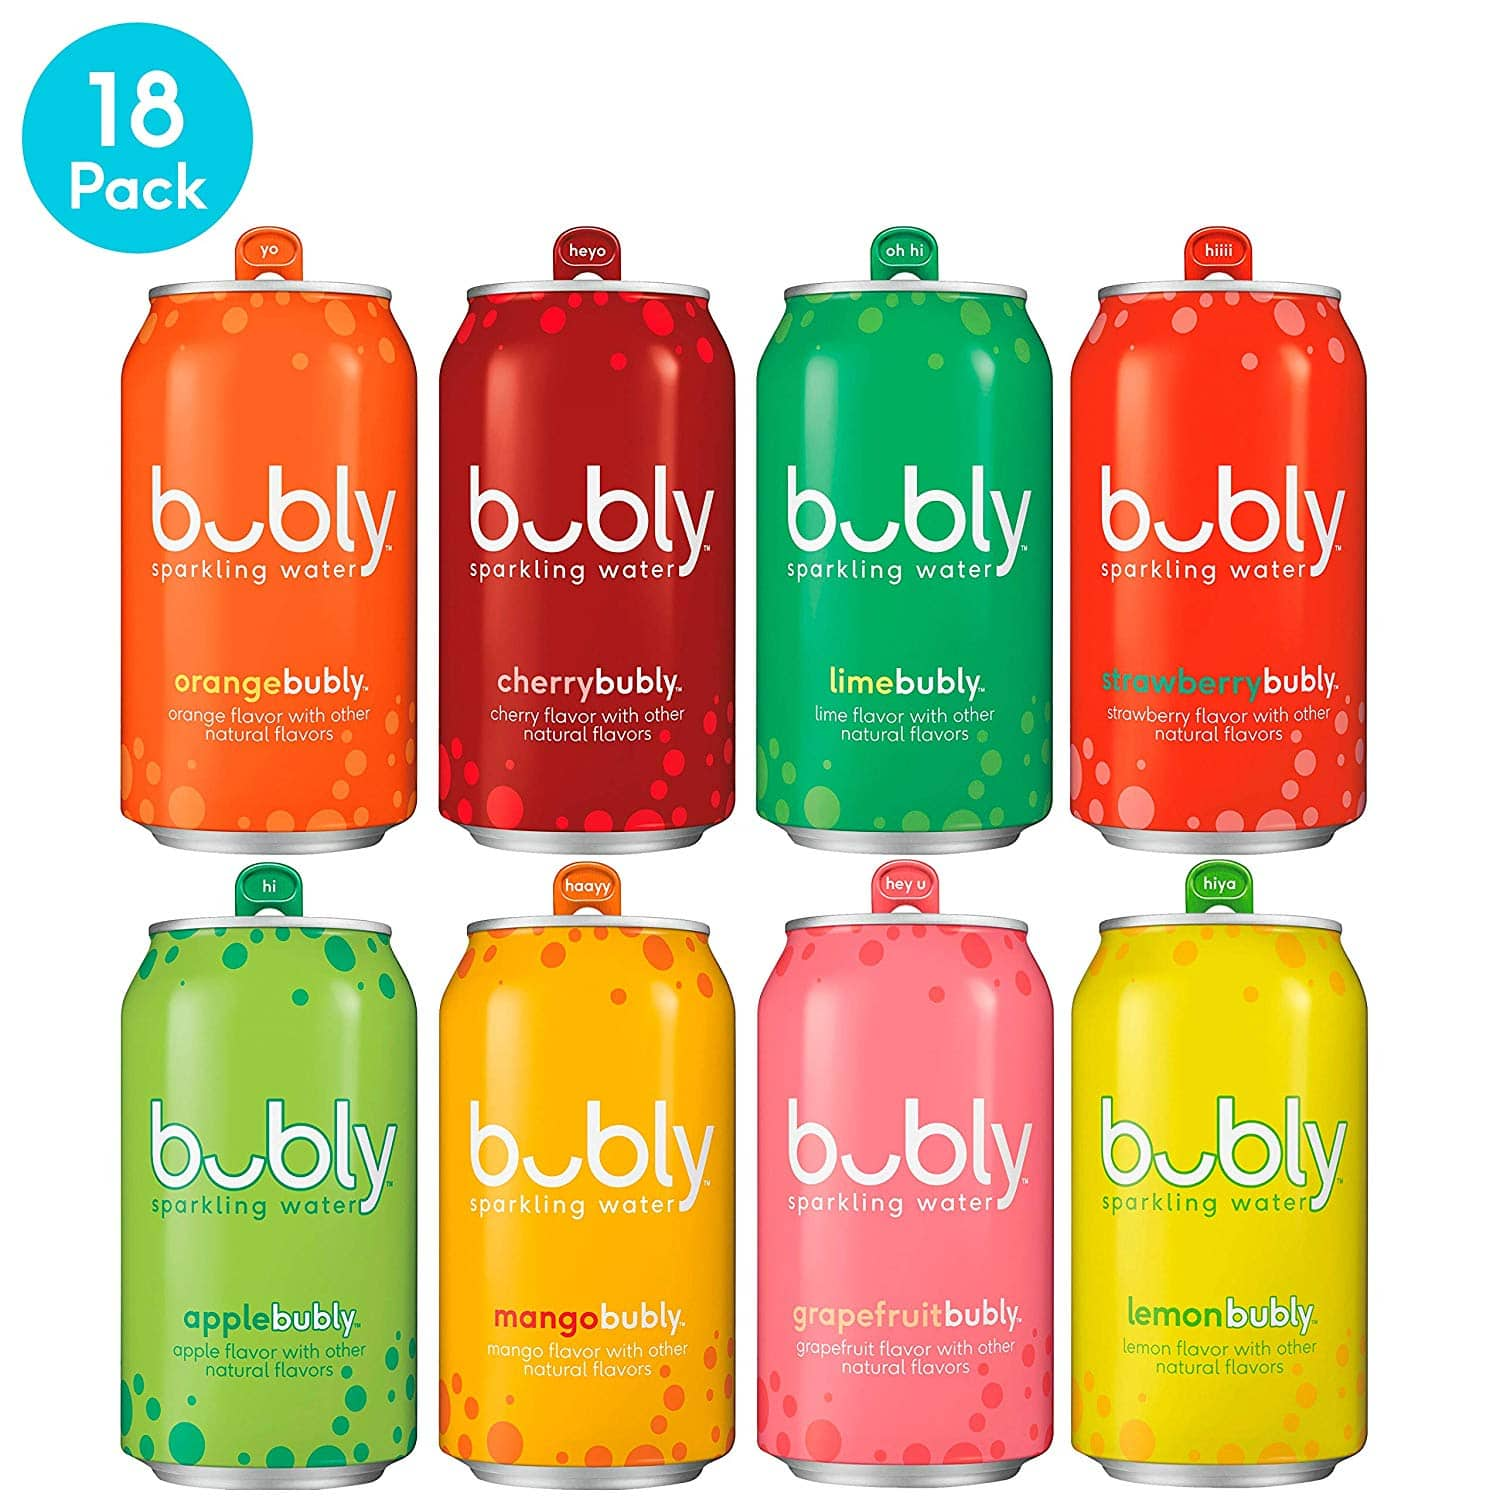 18-Count bubly Sparkling Water, 8 Flavor Variety Pack $7.69 5% or $6.59 15% & More AC w/s&s